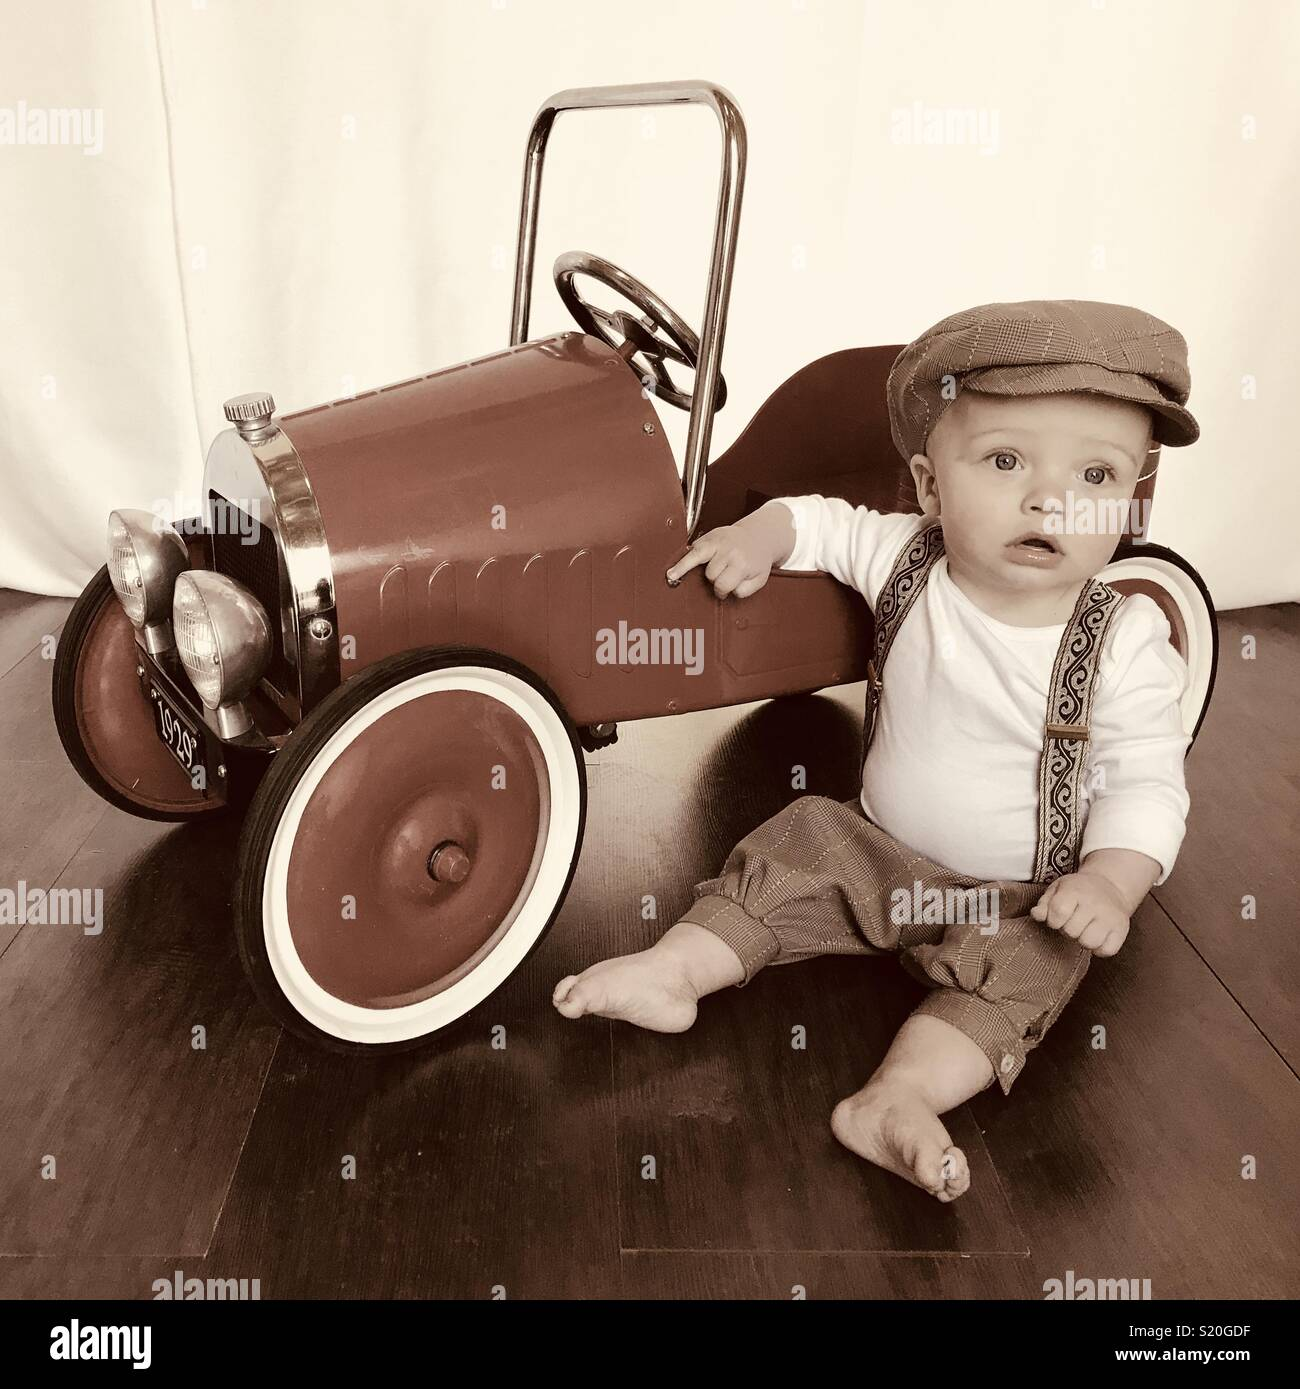 2073ec26f26ef Cute baby in a news boy outfit playing with his antique looking peddle car.  This